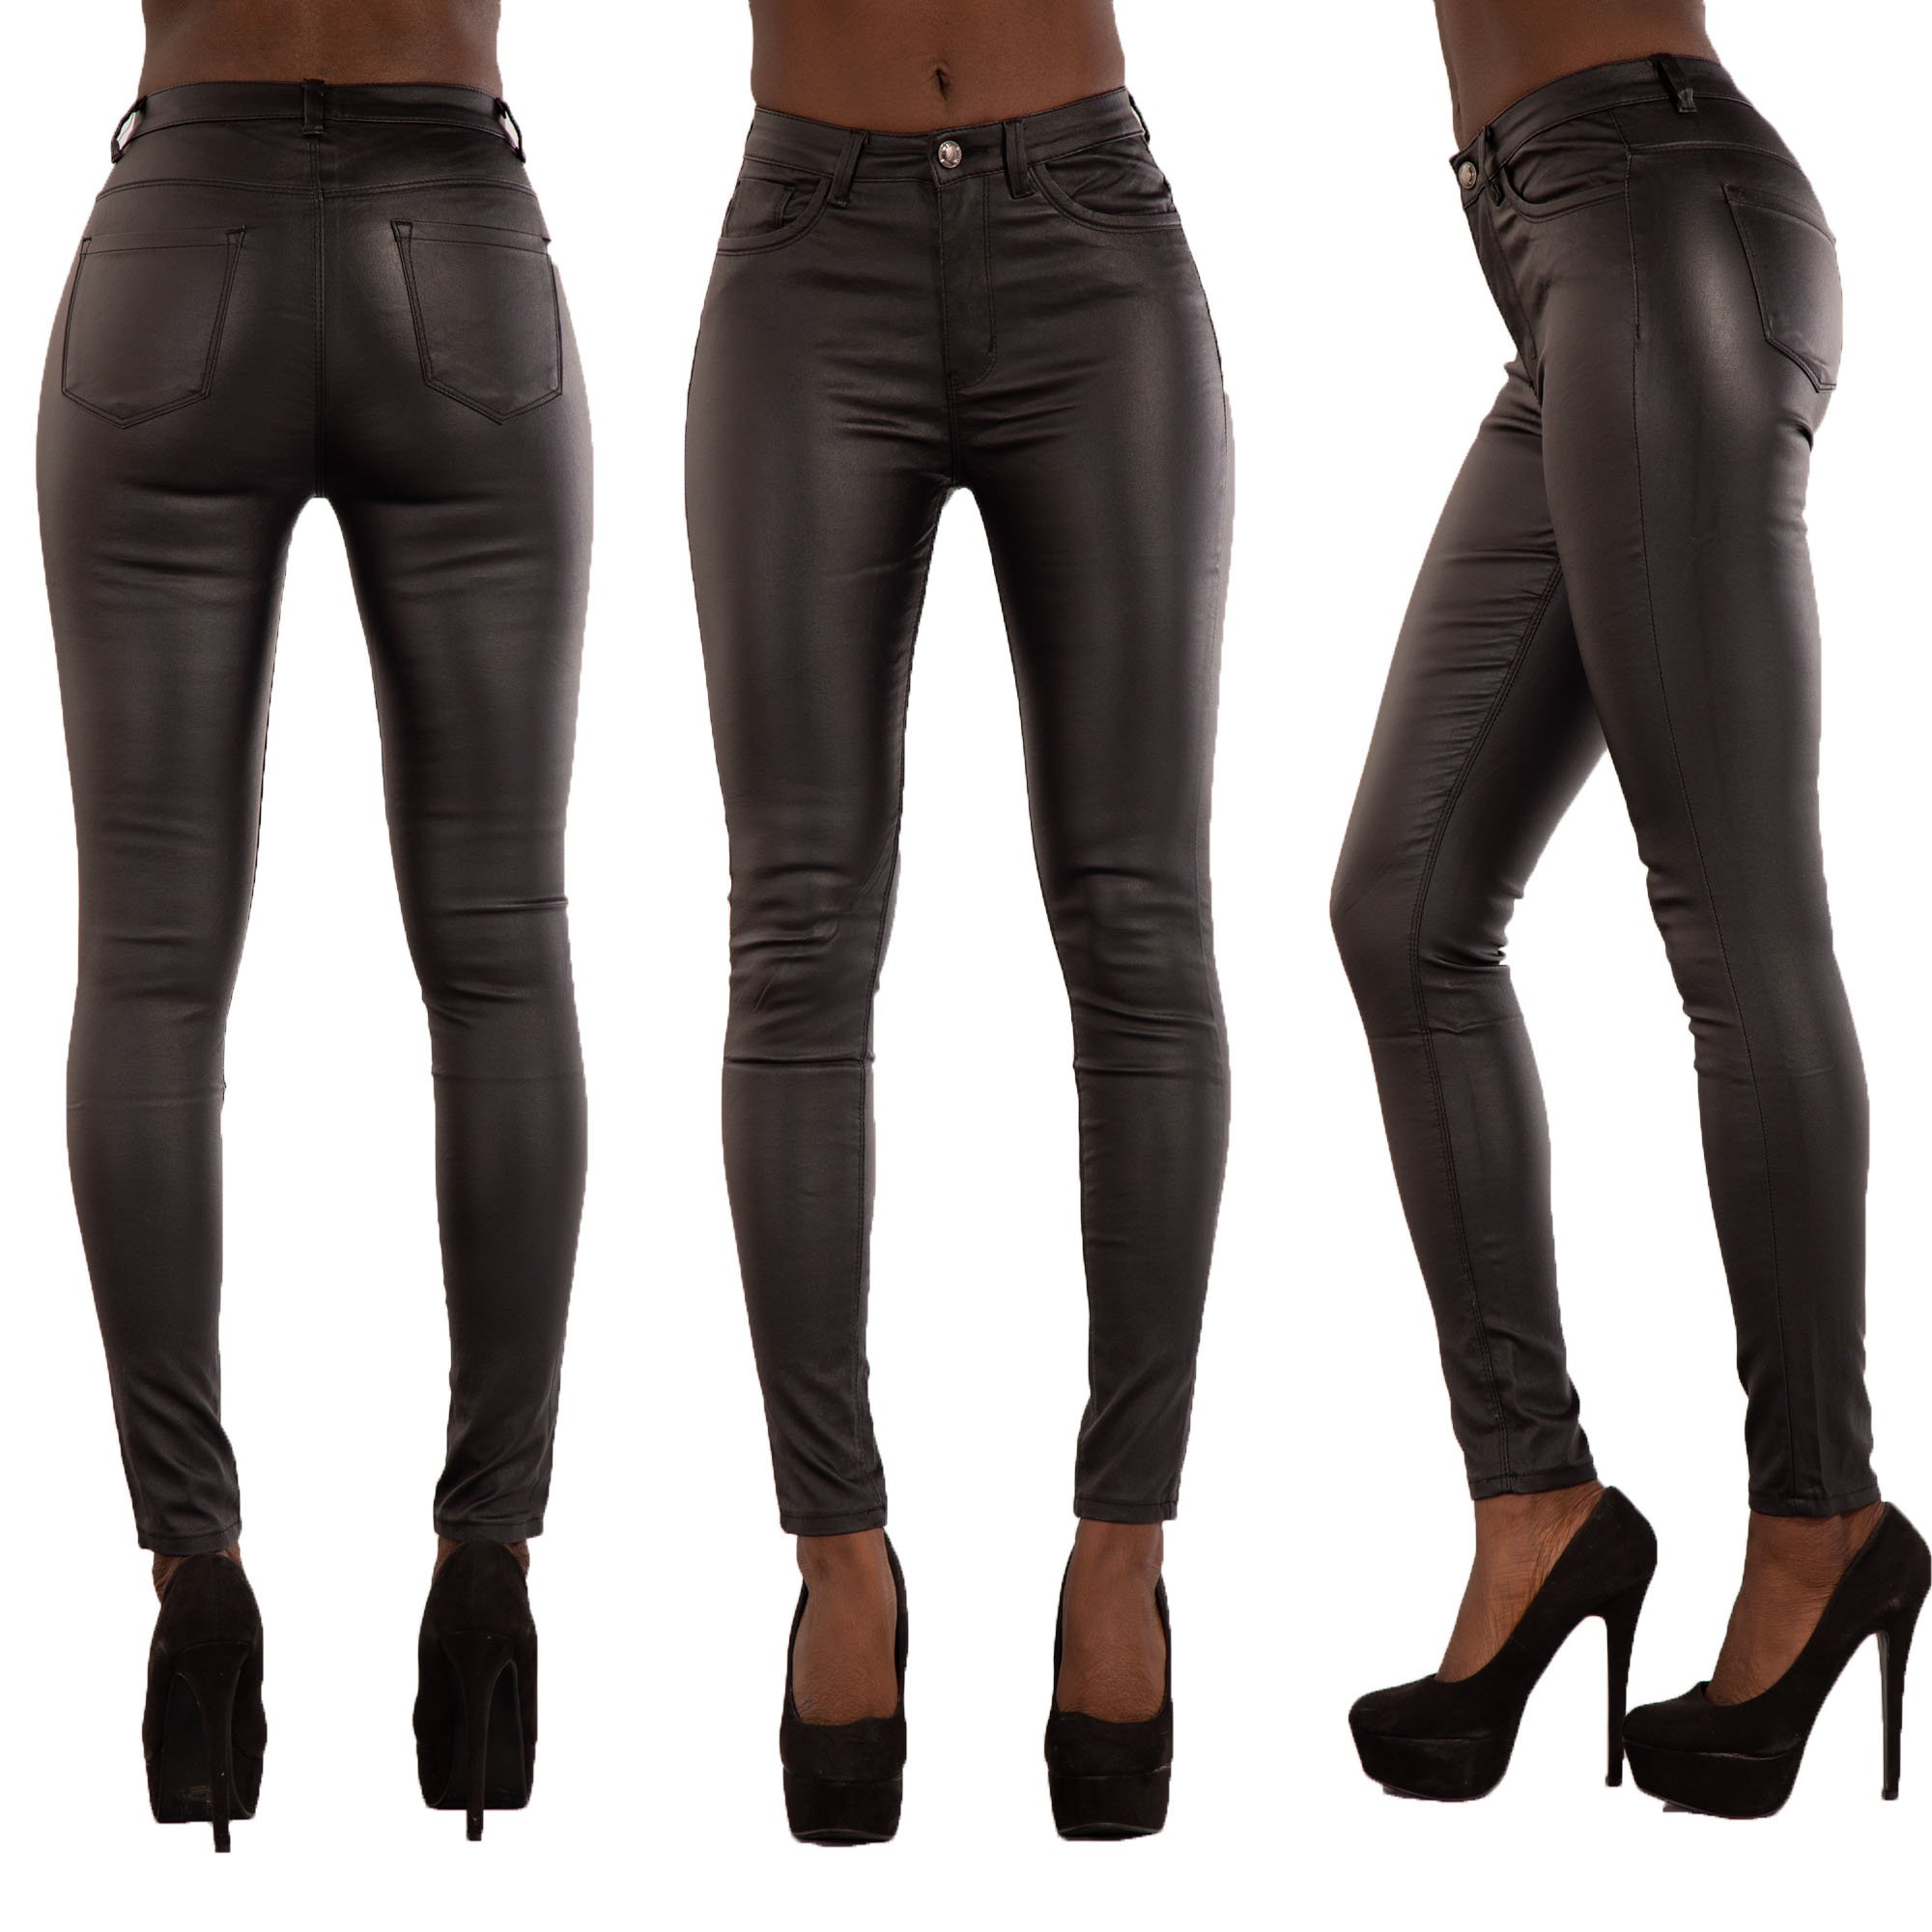 56ffb3551f Details about WOMEN'S FAUX LEATHER TROUSERS Wet Look Skinny Slim Jeans Size  8-16